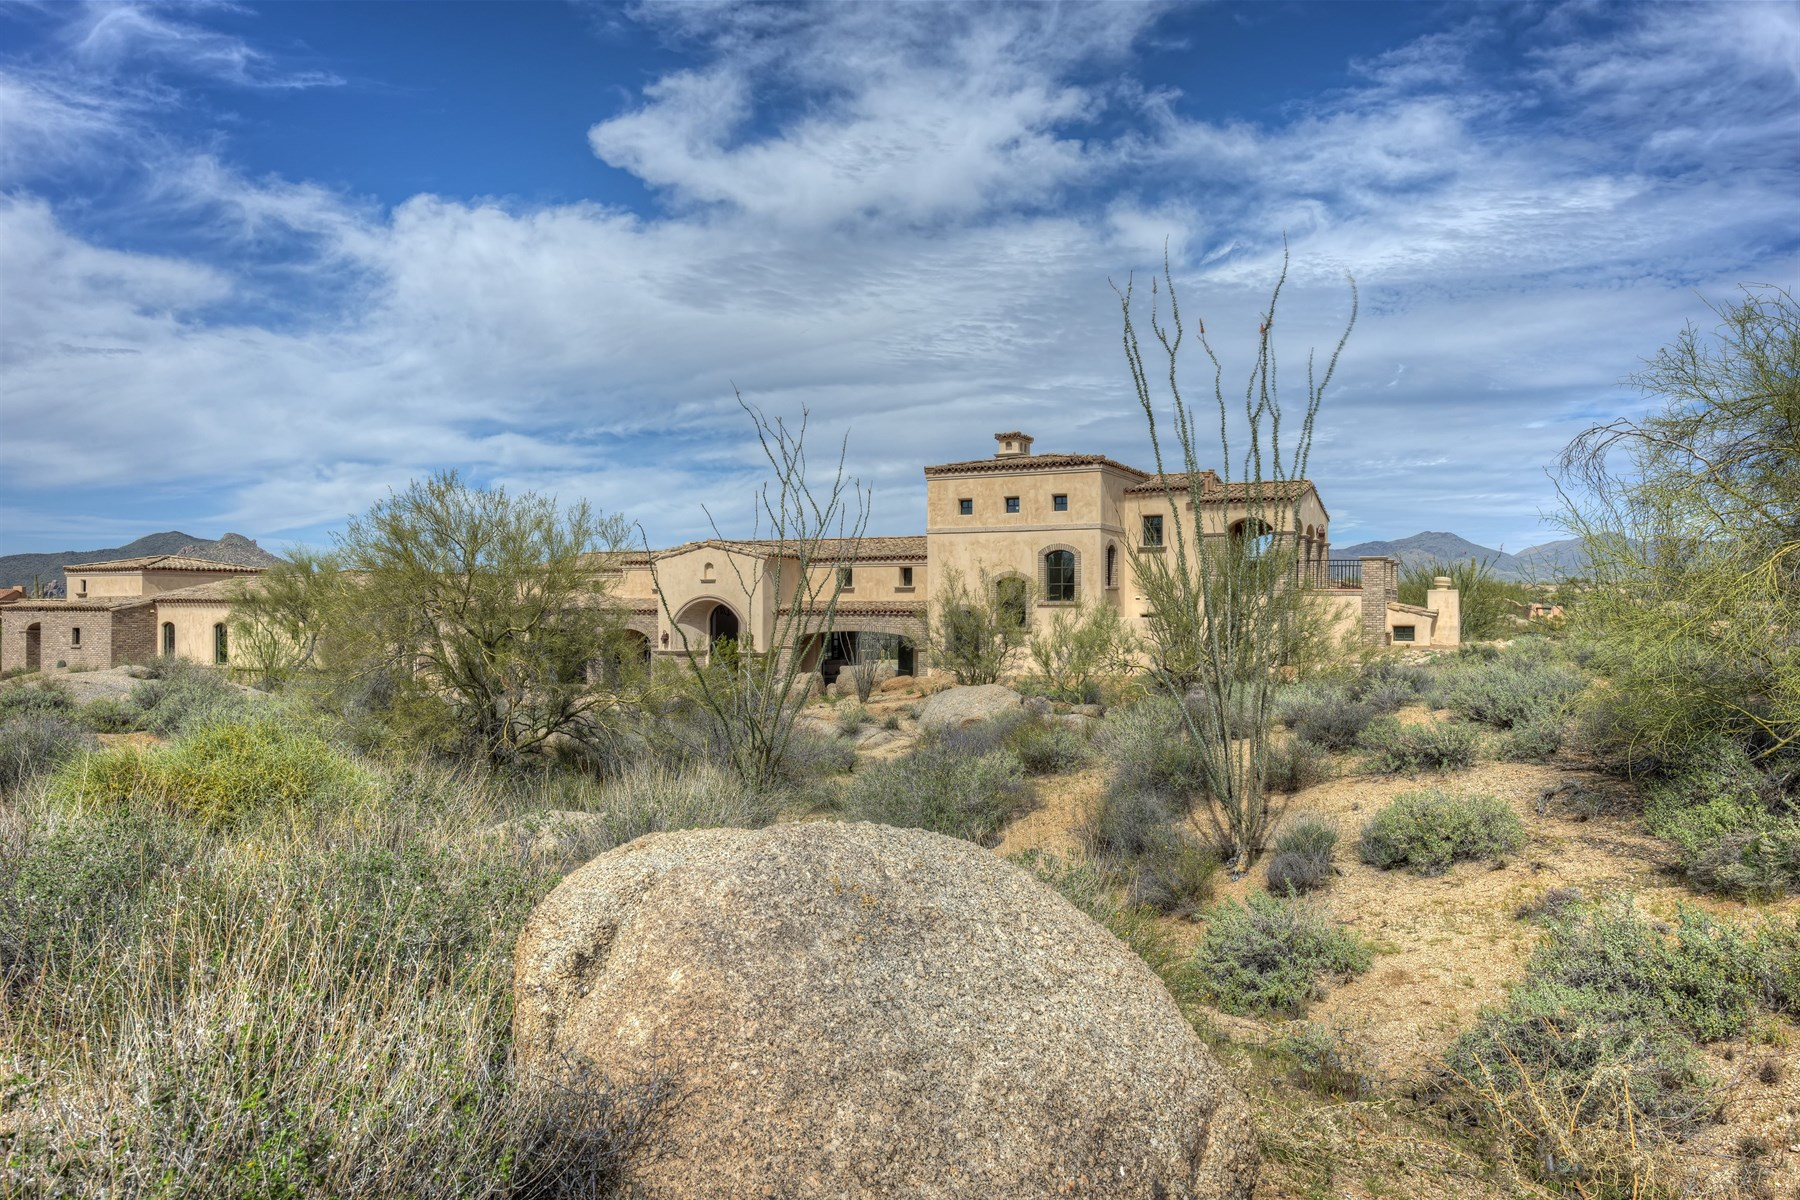 Single Family Home for Sale at Rural Mediterranean estate in Whisper Rock 33251 N Solstice Way Scottsdale, Arizona, 85266 United States